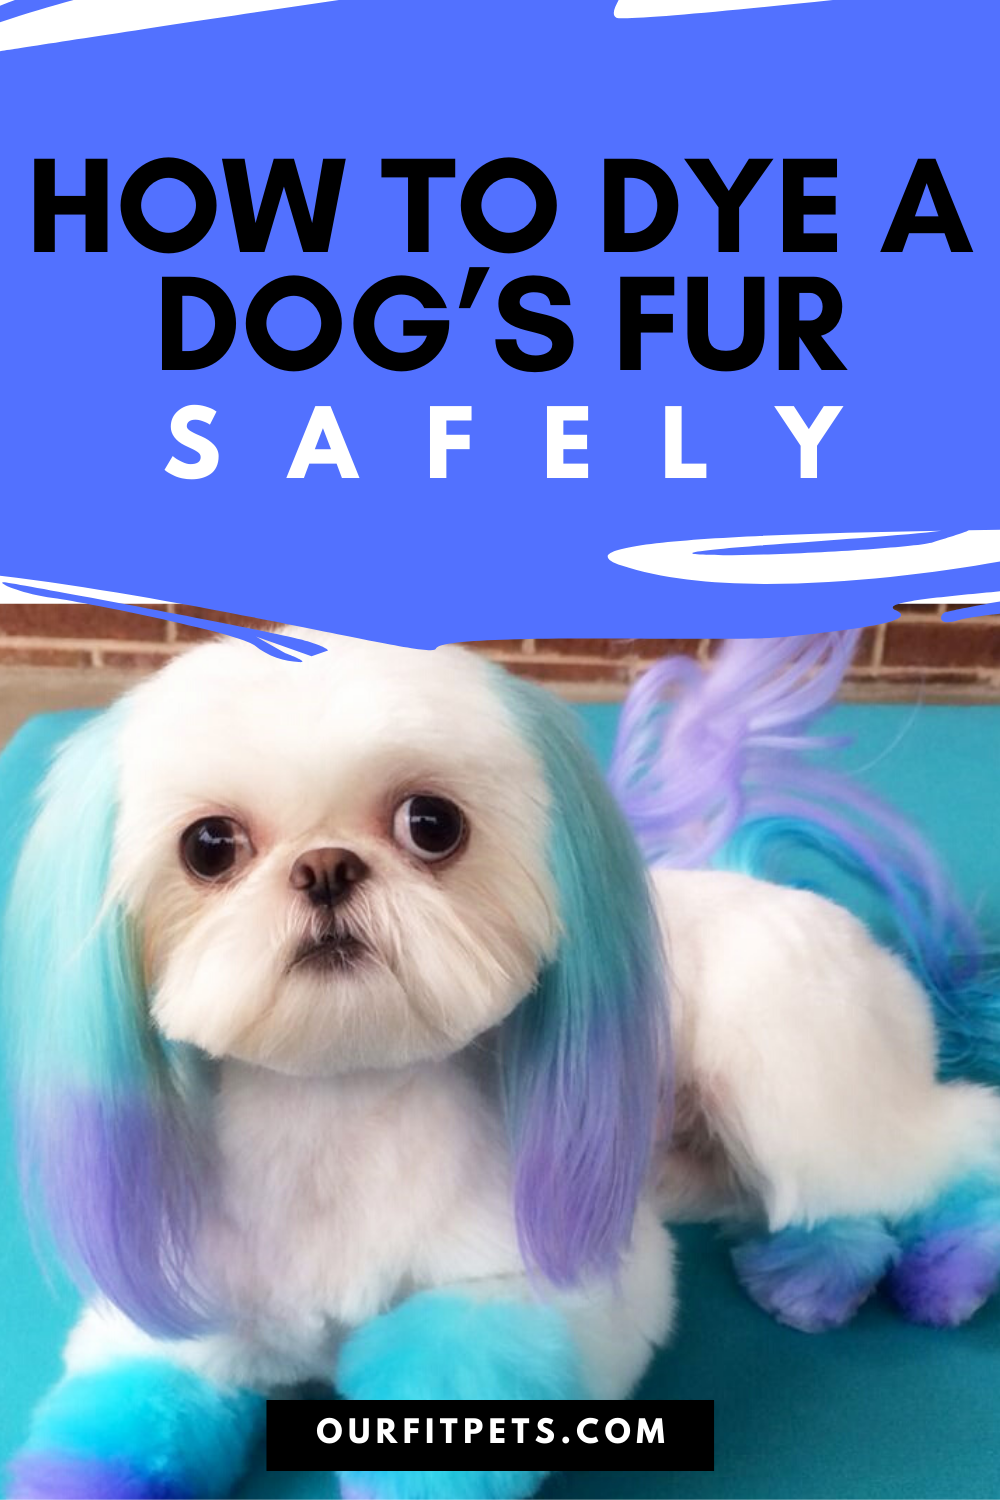 Dog Friendly Halloween Events 2020 How to Dye a Dog's Fur Safely | Our Fit Pets in 2020 | Dogs, Dog